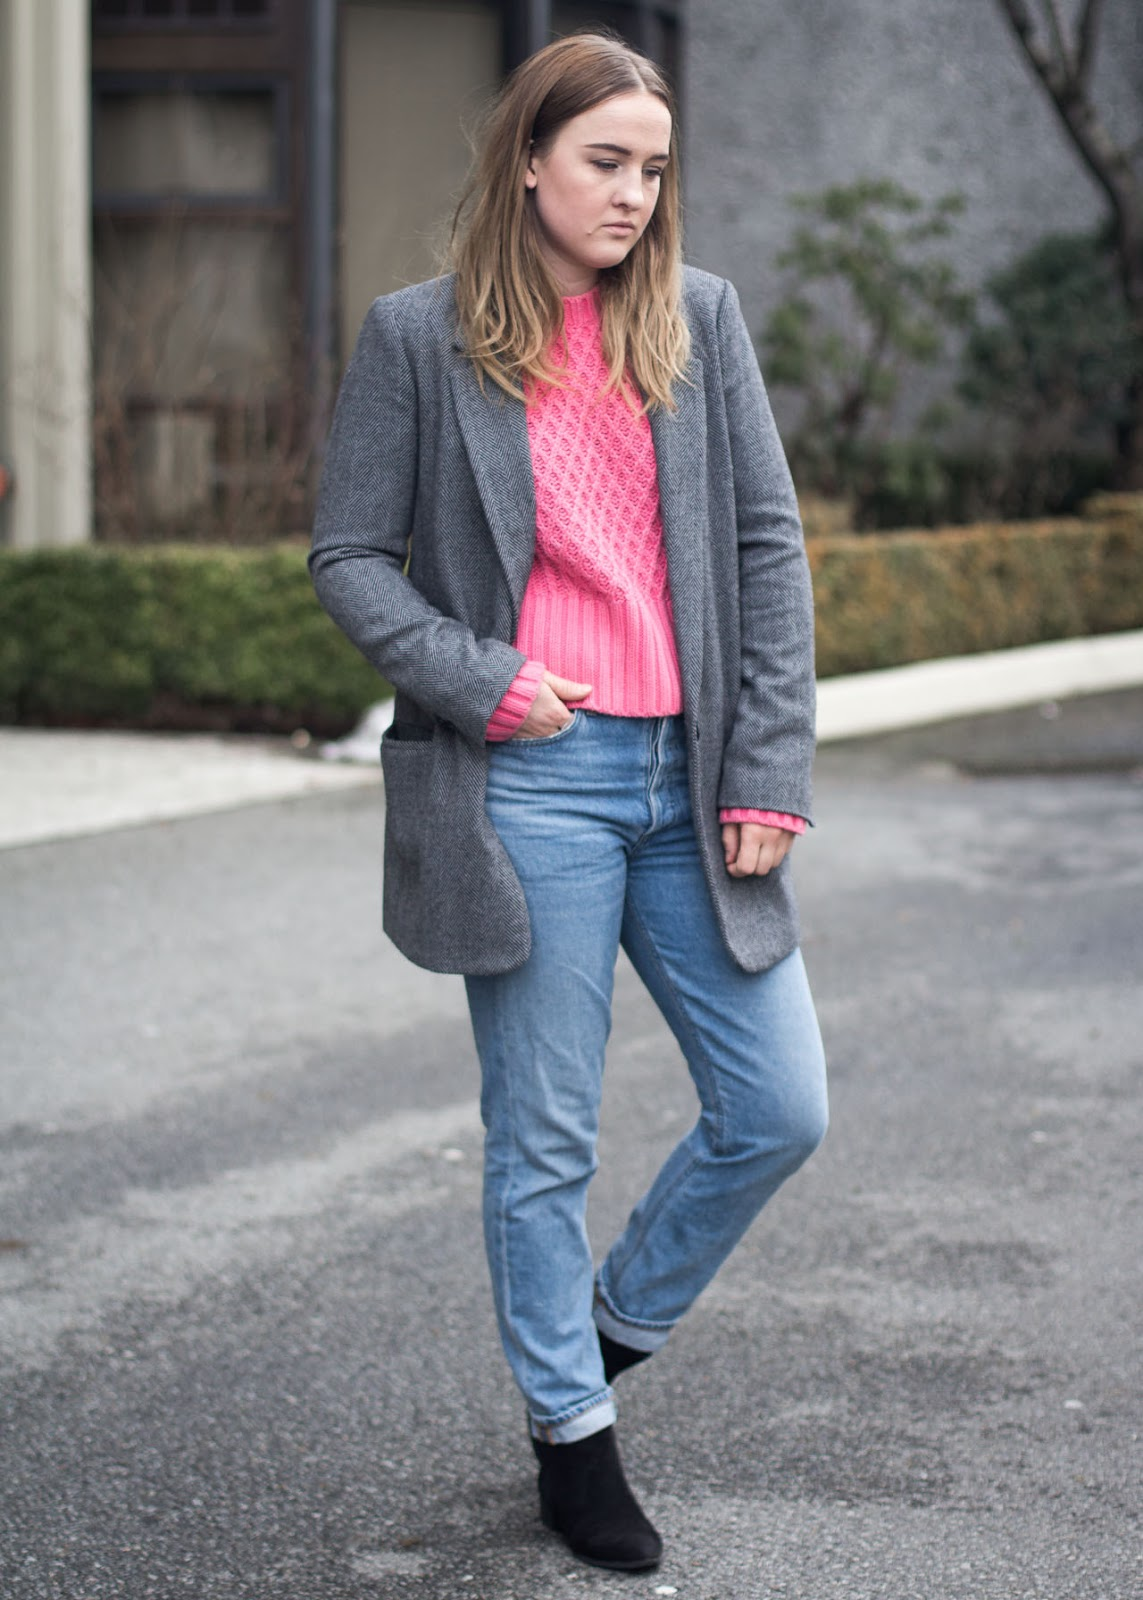 Adding colour to your wardrobe - Acne Studios knit - Vancouver Fashion Blogger